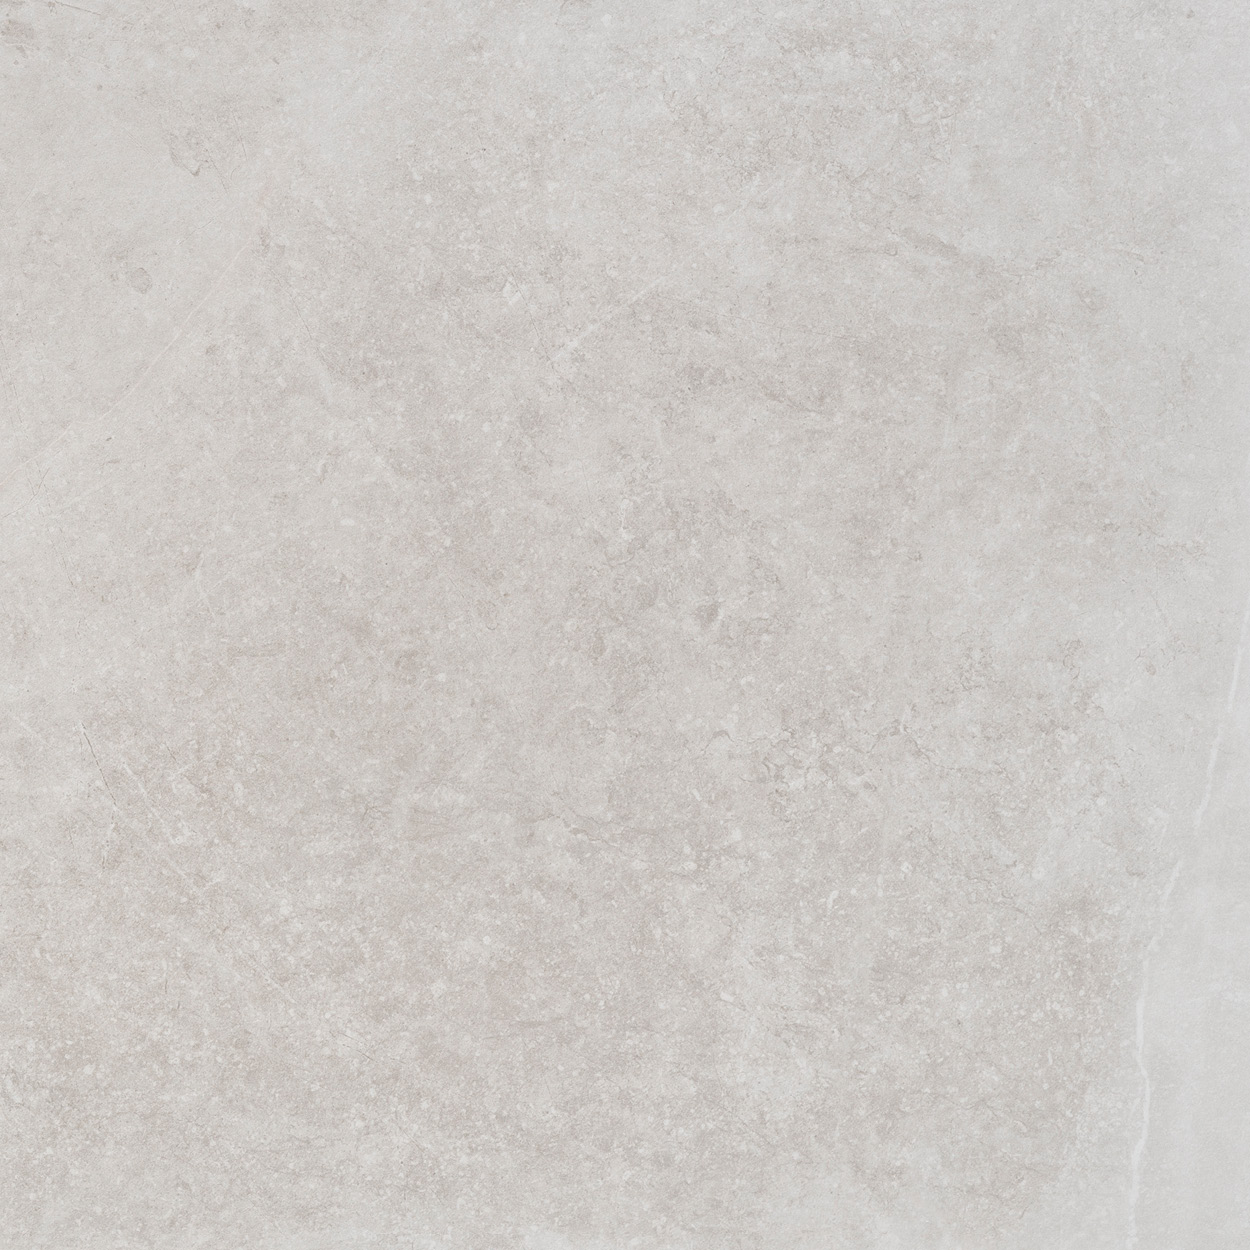 12 x 24 Evo Stone Ivory Honed finished Rectified Porcelain Tile